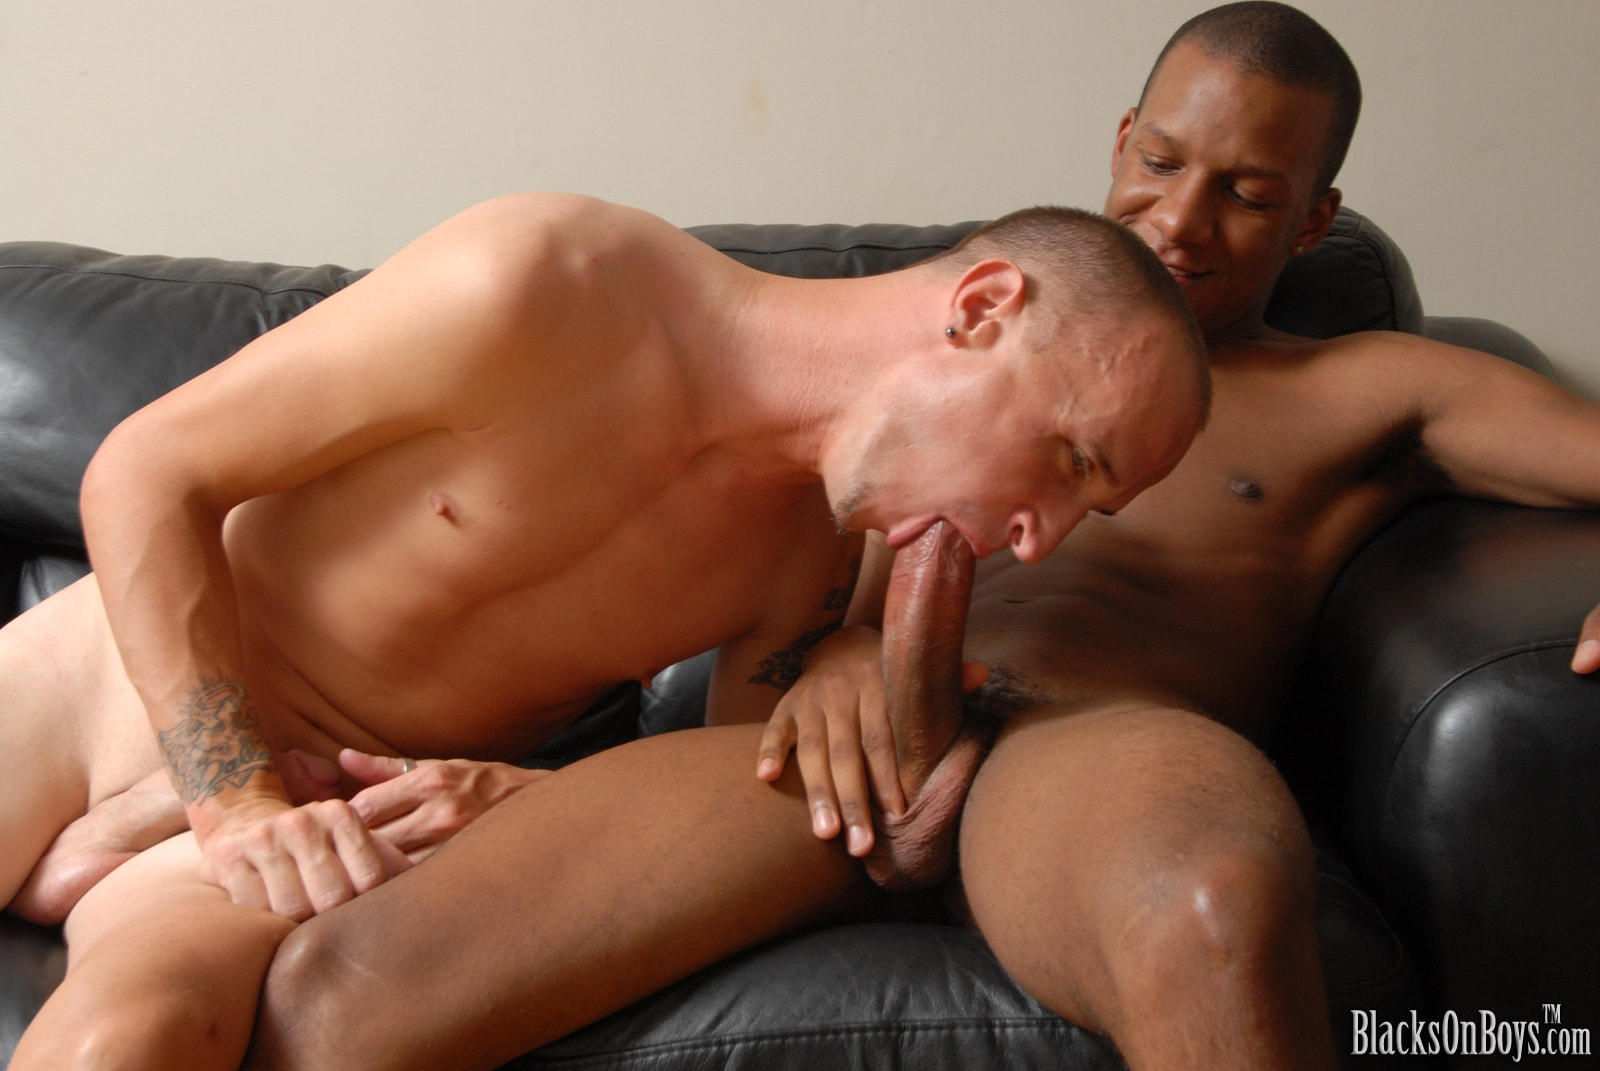 Dogfart Men '- Blacks On Boys' starring Austin Dallas (Photo 8)